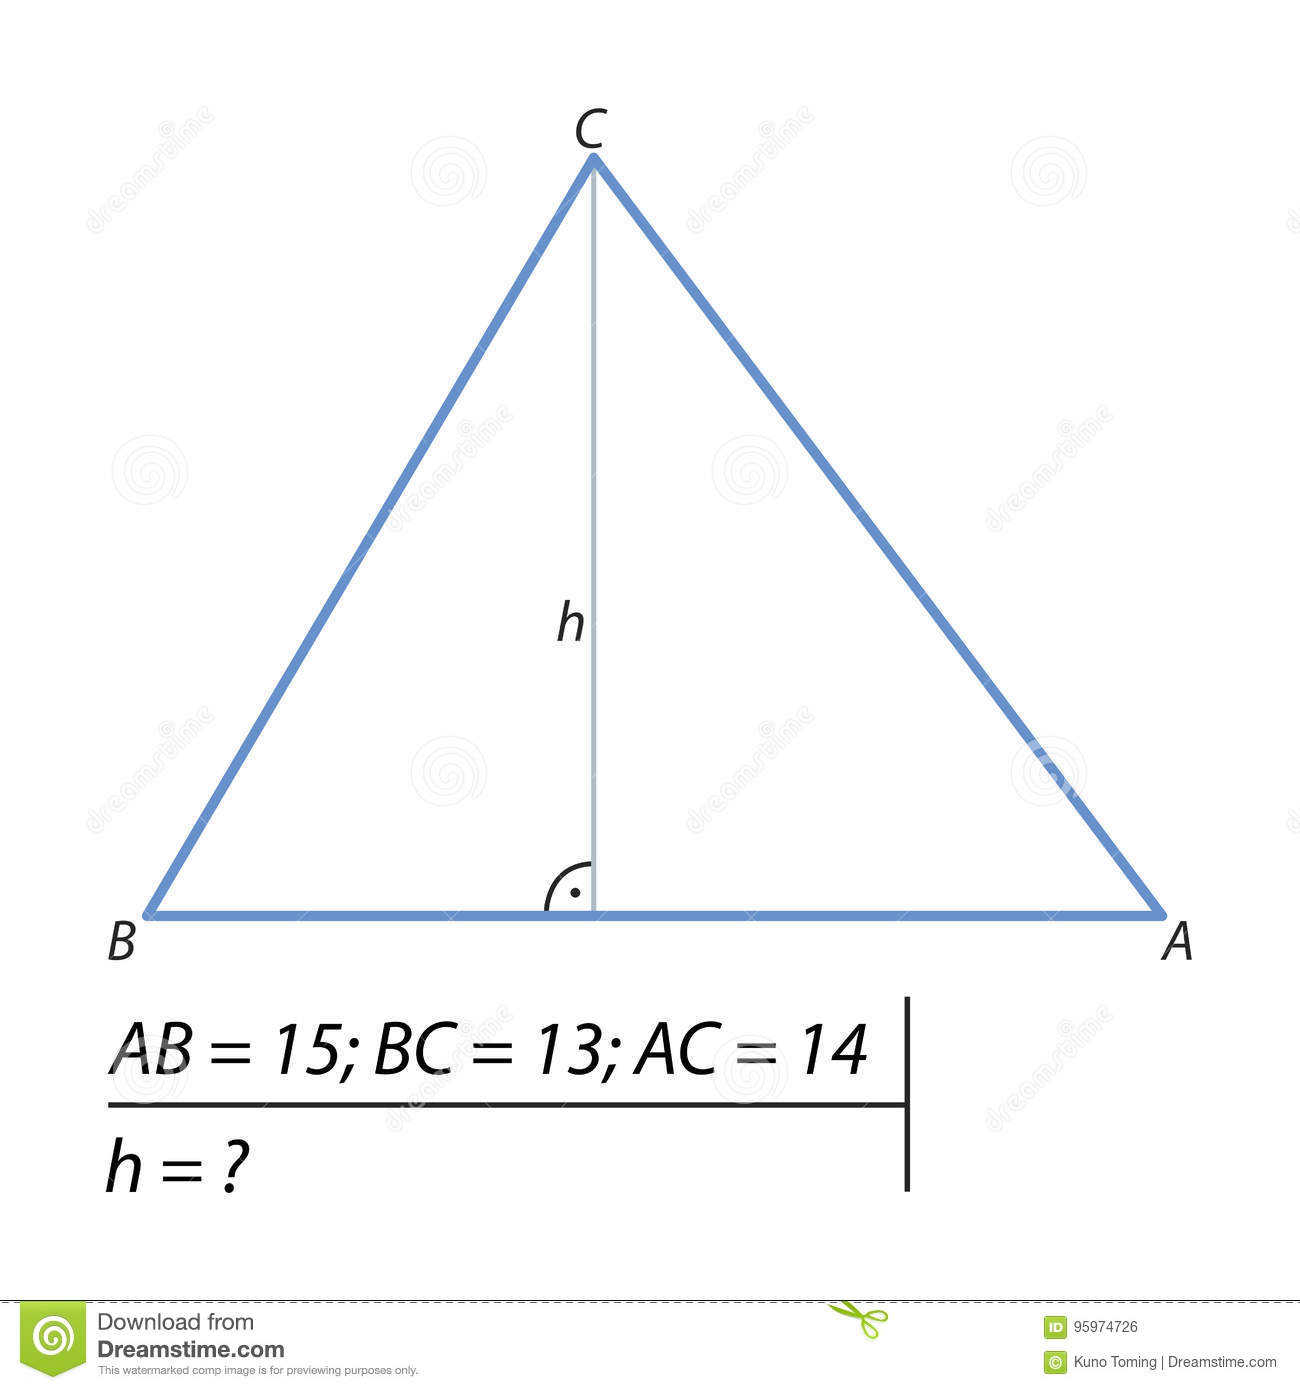 How to find the height of a parallelogram